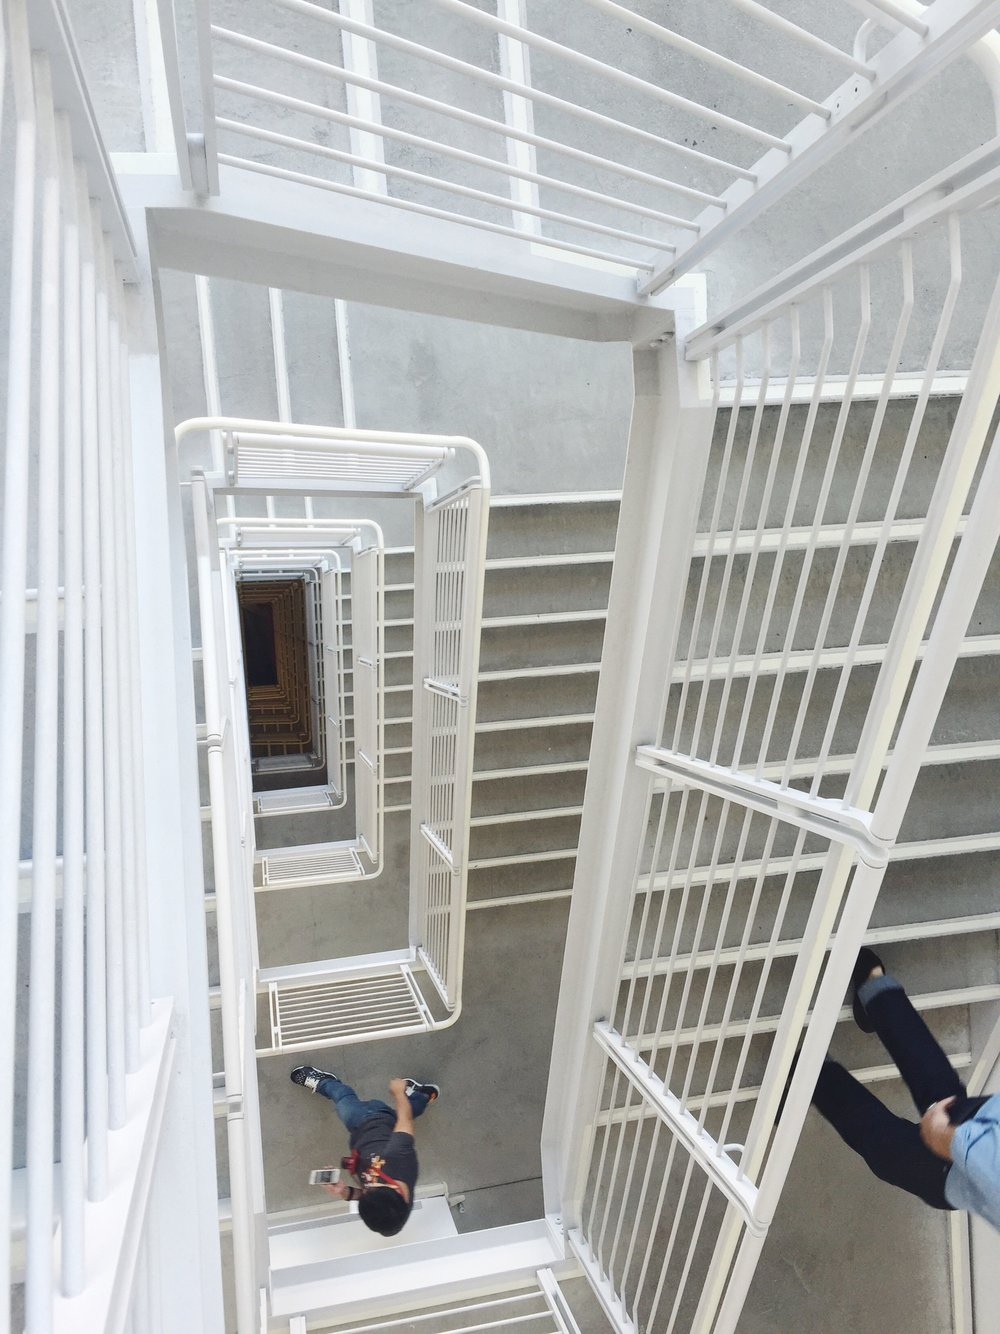 The Whitney's vertigo-inducing stairs